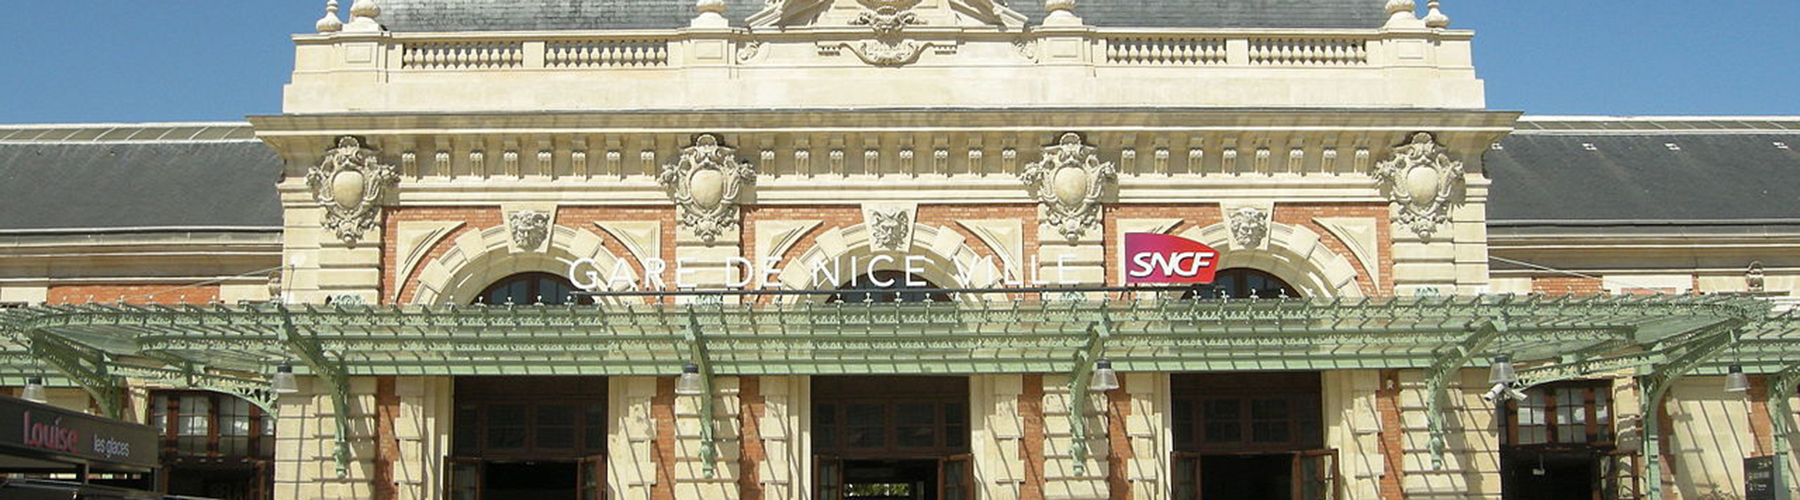 Nice – Hostels close to Gare de Nice railway station. Maps for Nice, Photos and Reviews for each hostel in Nice.